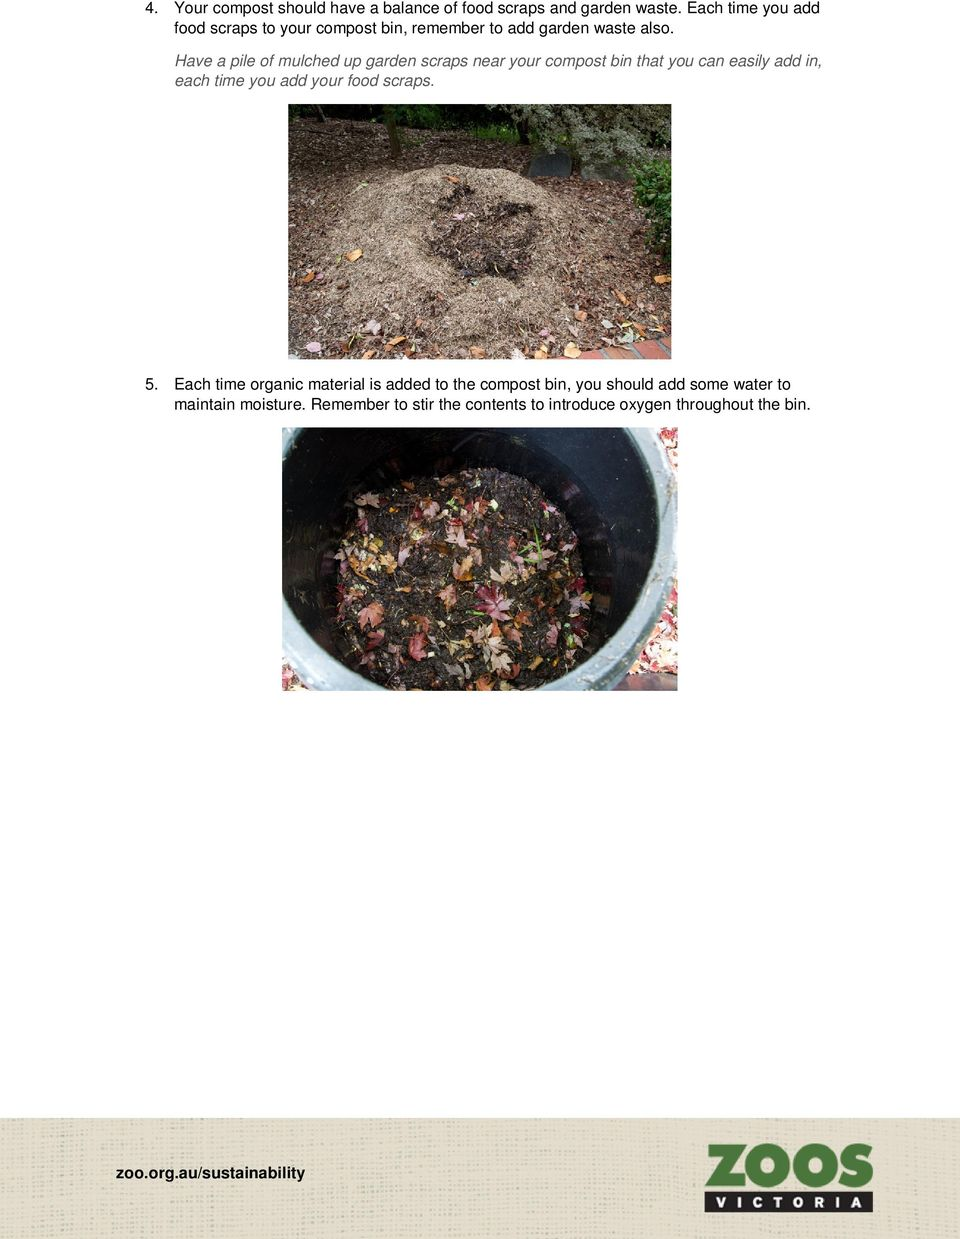 Have a pile of mulched up garden scraps near your compost bin that you can easily add in, each time you add your